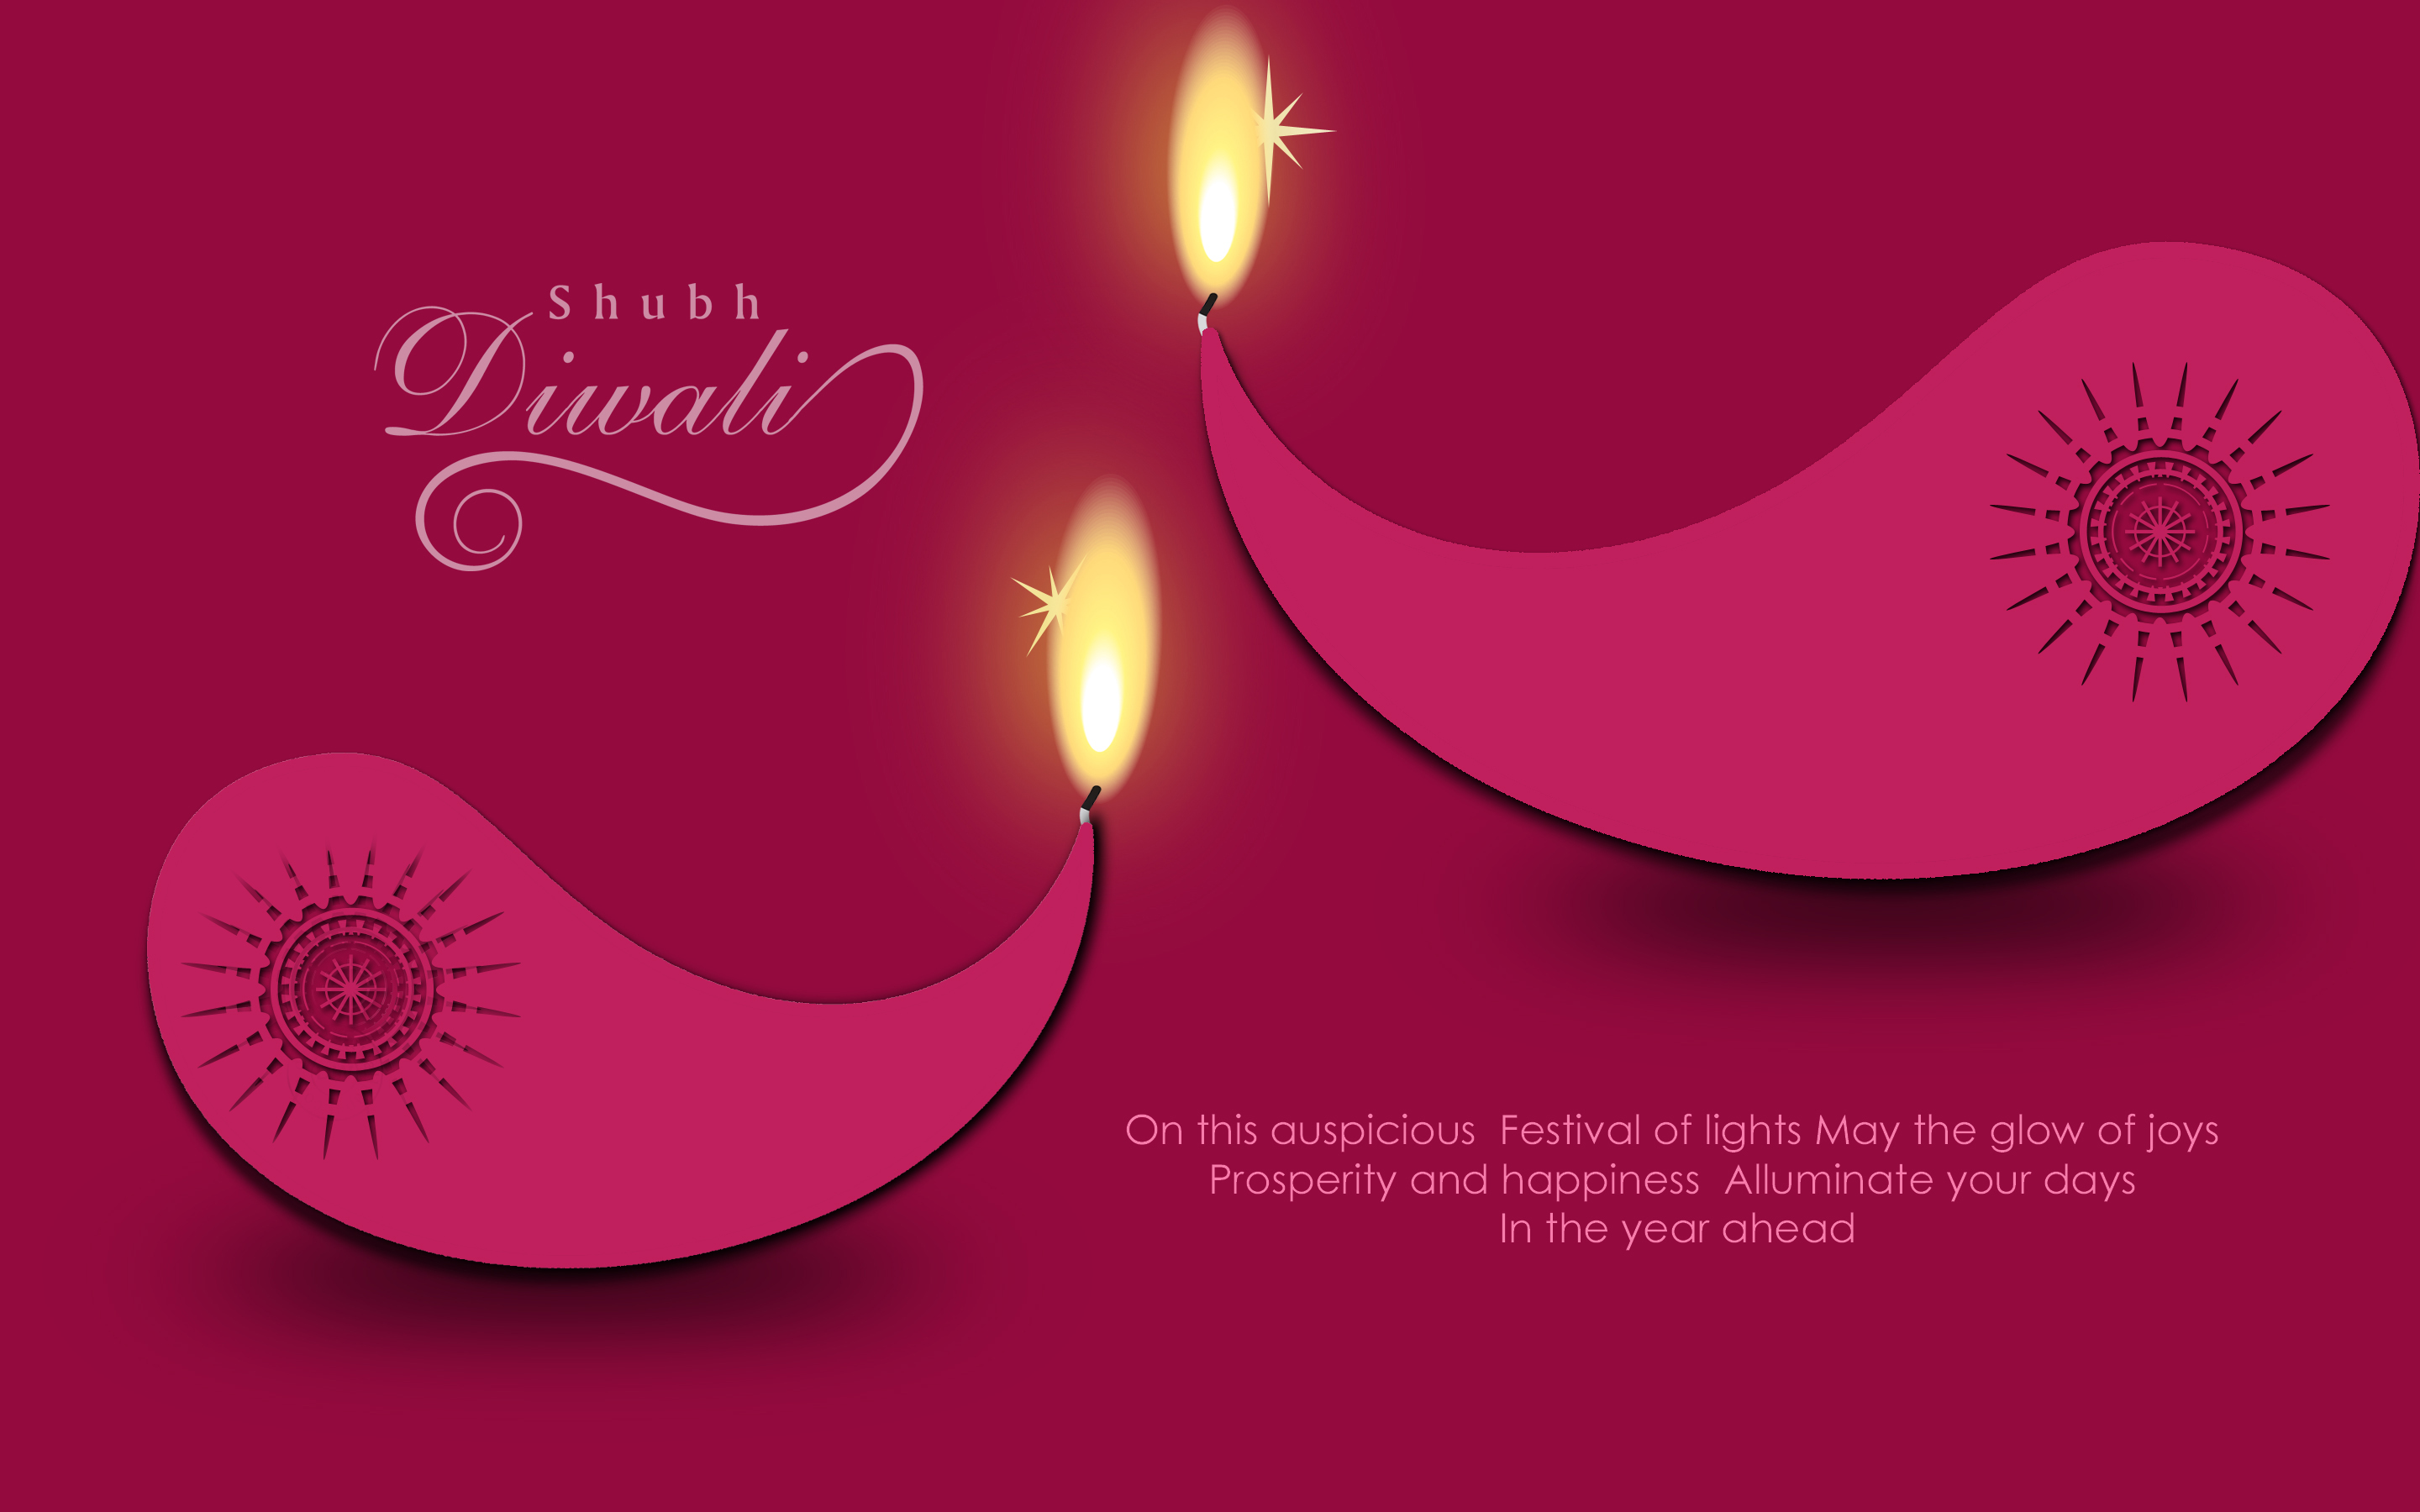 Tamil Quotes Wallpaper Download Latest Happy Diwali 2015 Wishes Messages Images Pictures